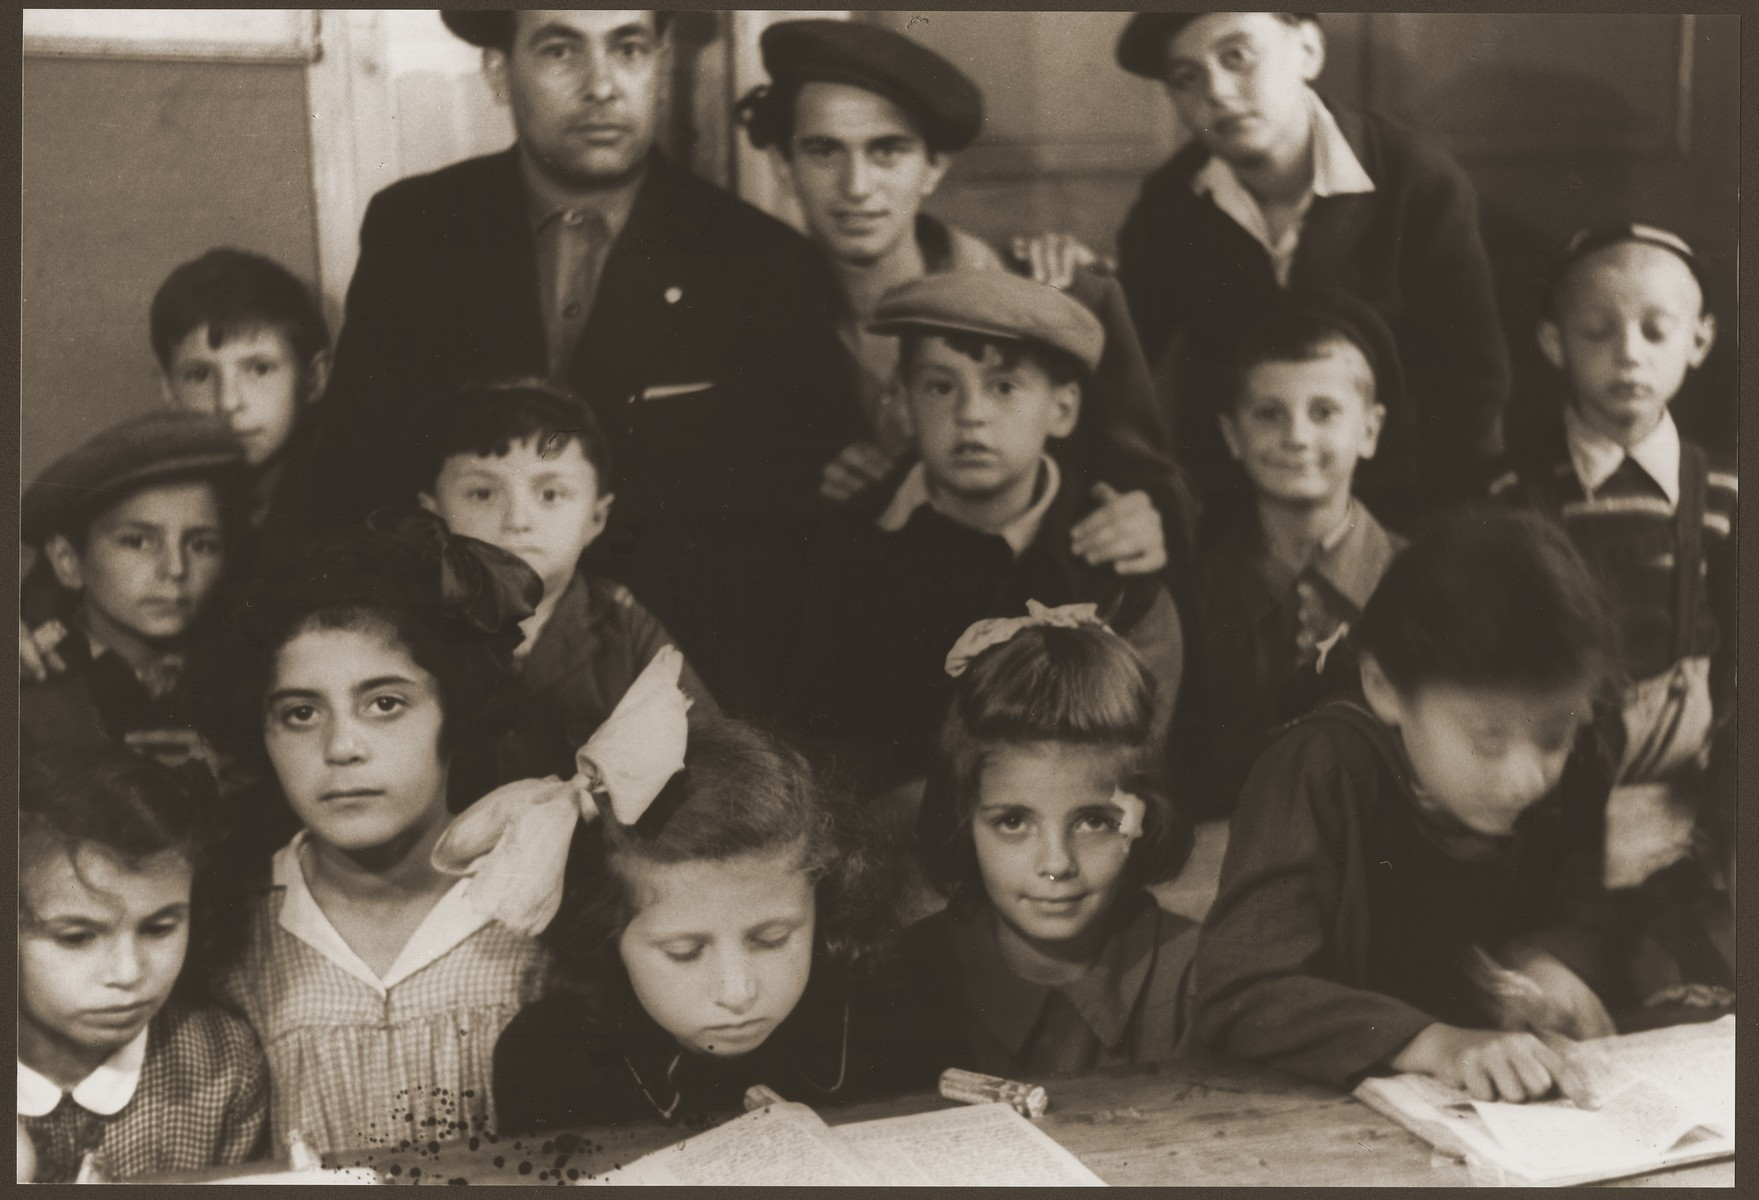 Pupils of the Vaad Hatzala sponsored Yavne Hebrew School at the Gabersee DP camp.  Those pictured include Bronia Spielman, Alter Spielman, Barbara Spielman Firestone (front row, far left), and Arthur Spielman (back row, center, wearing cap).